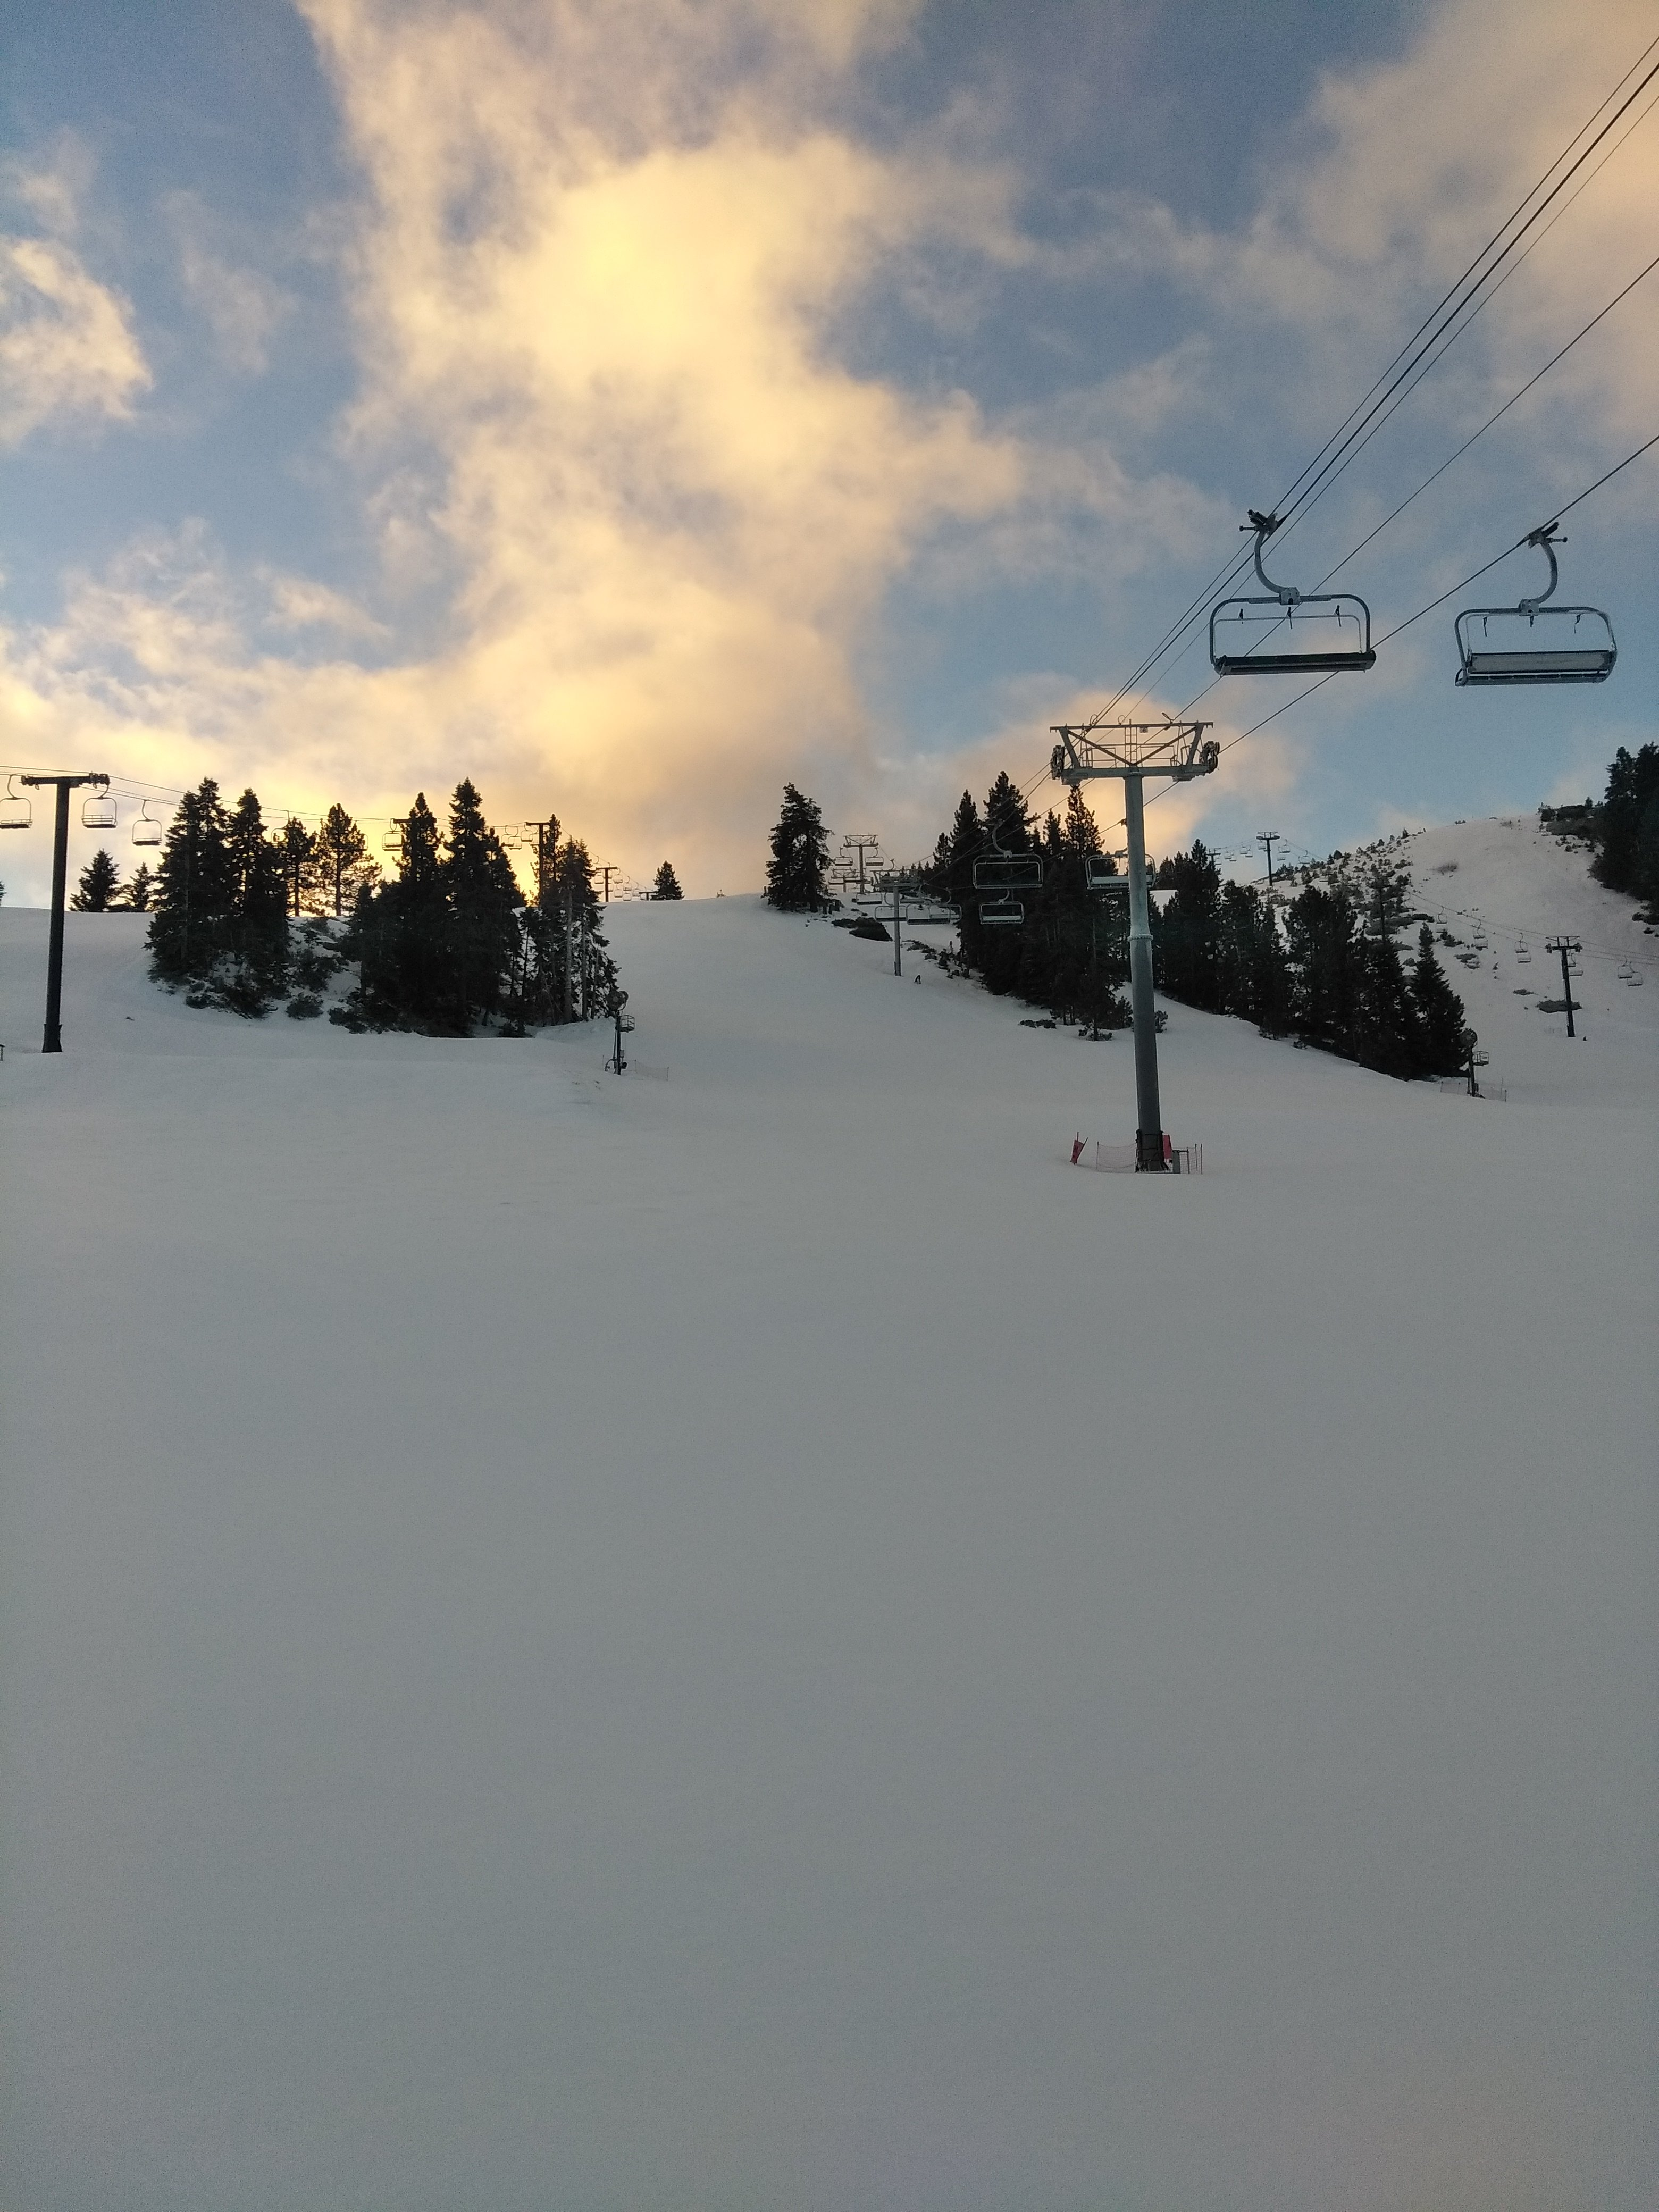 Scenery of ski lift and passing clouds overhead